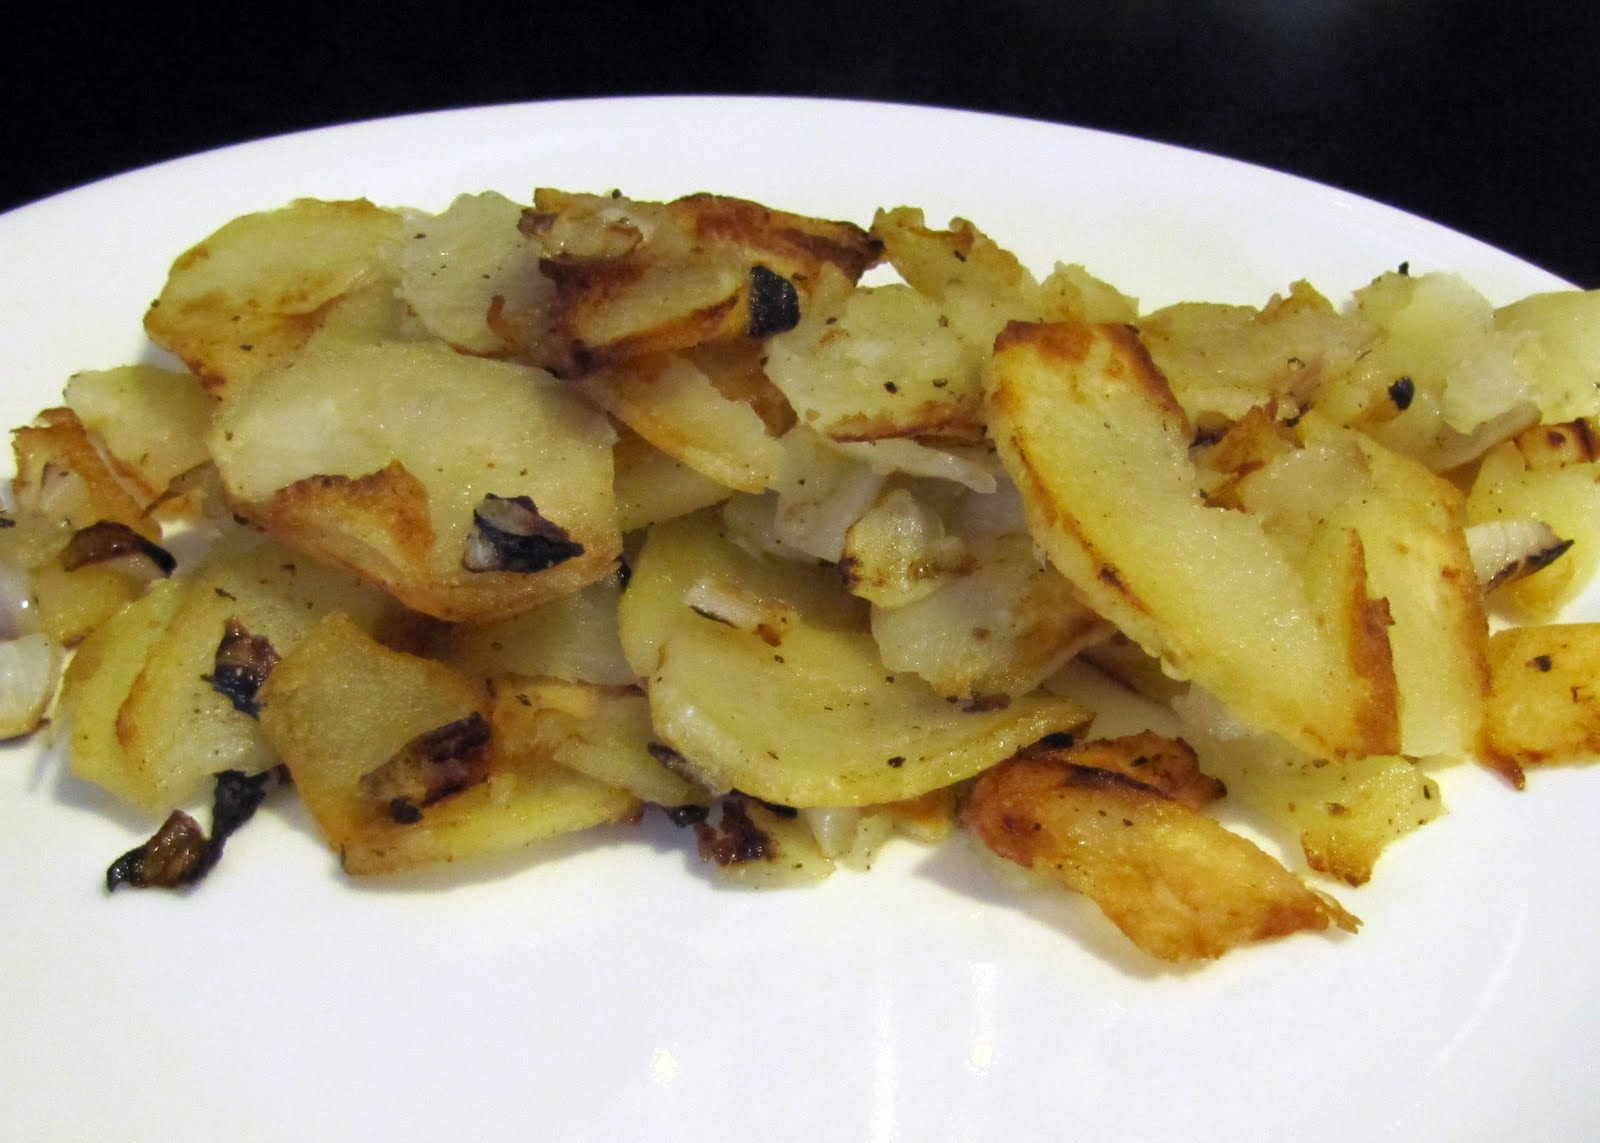 Smells Like Food in Here: American Fries with Onions